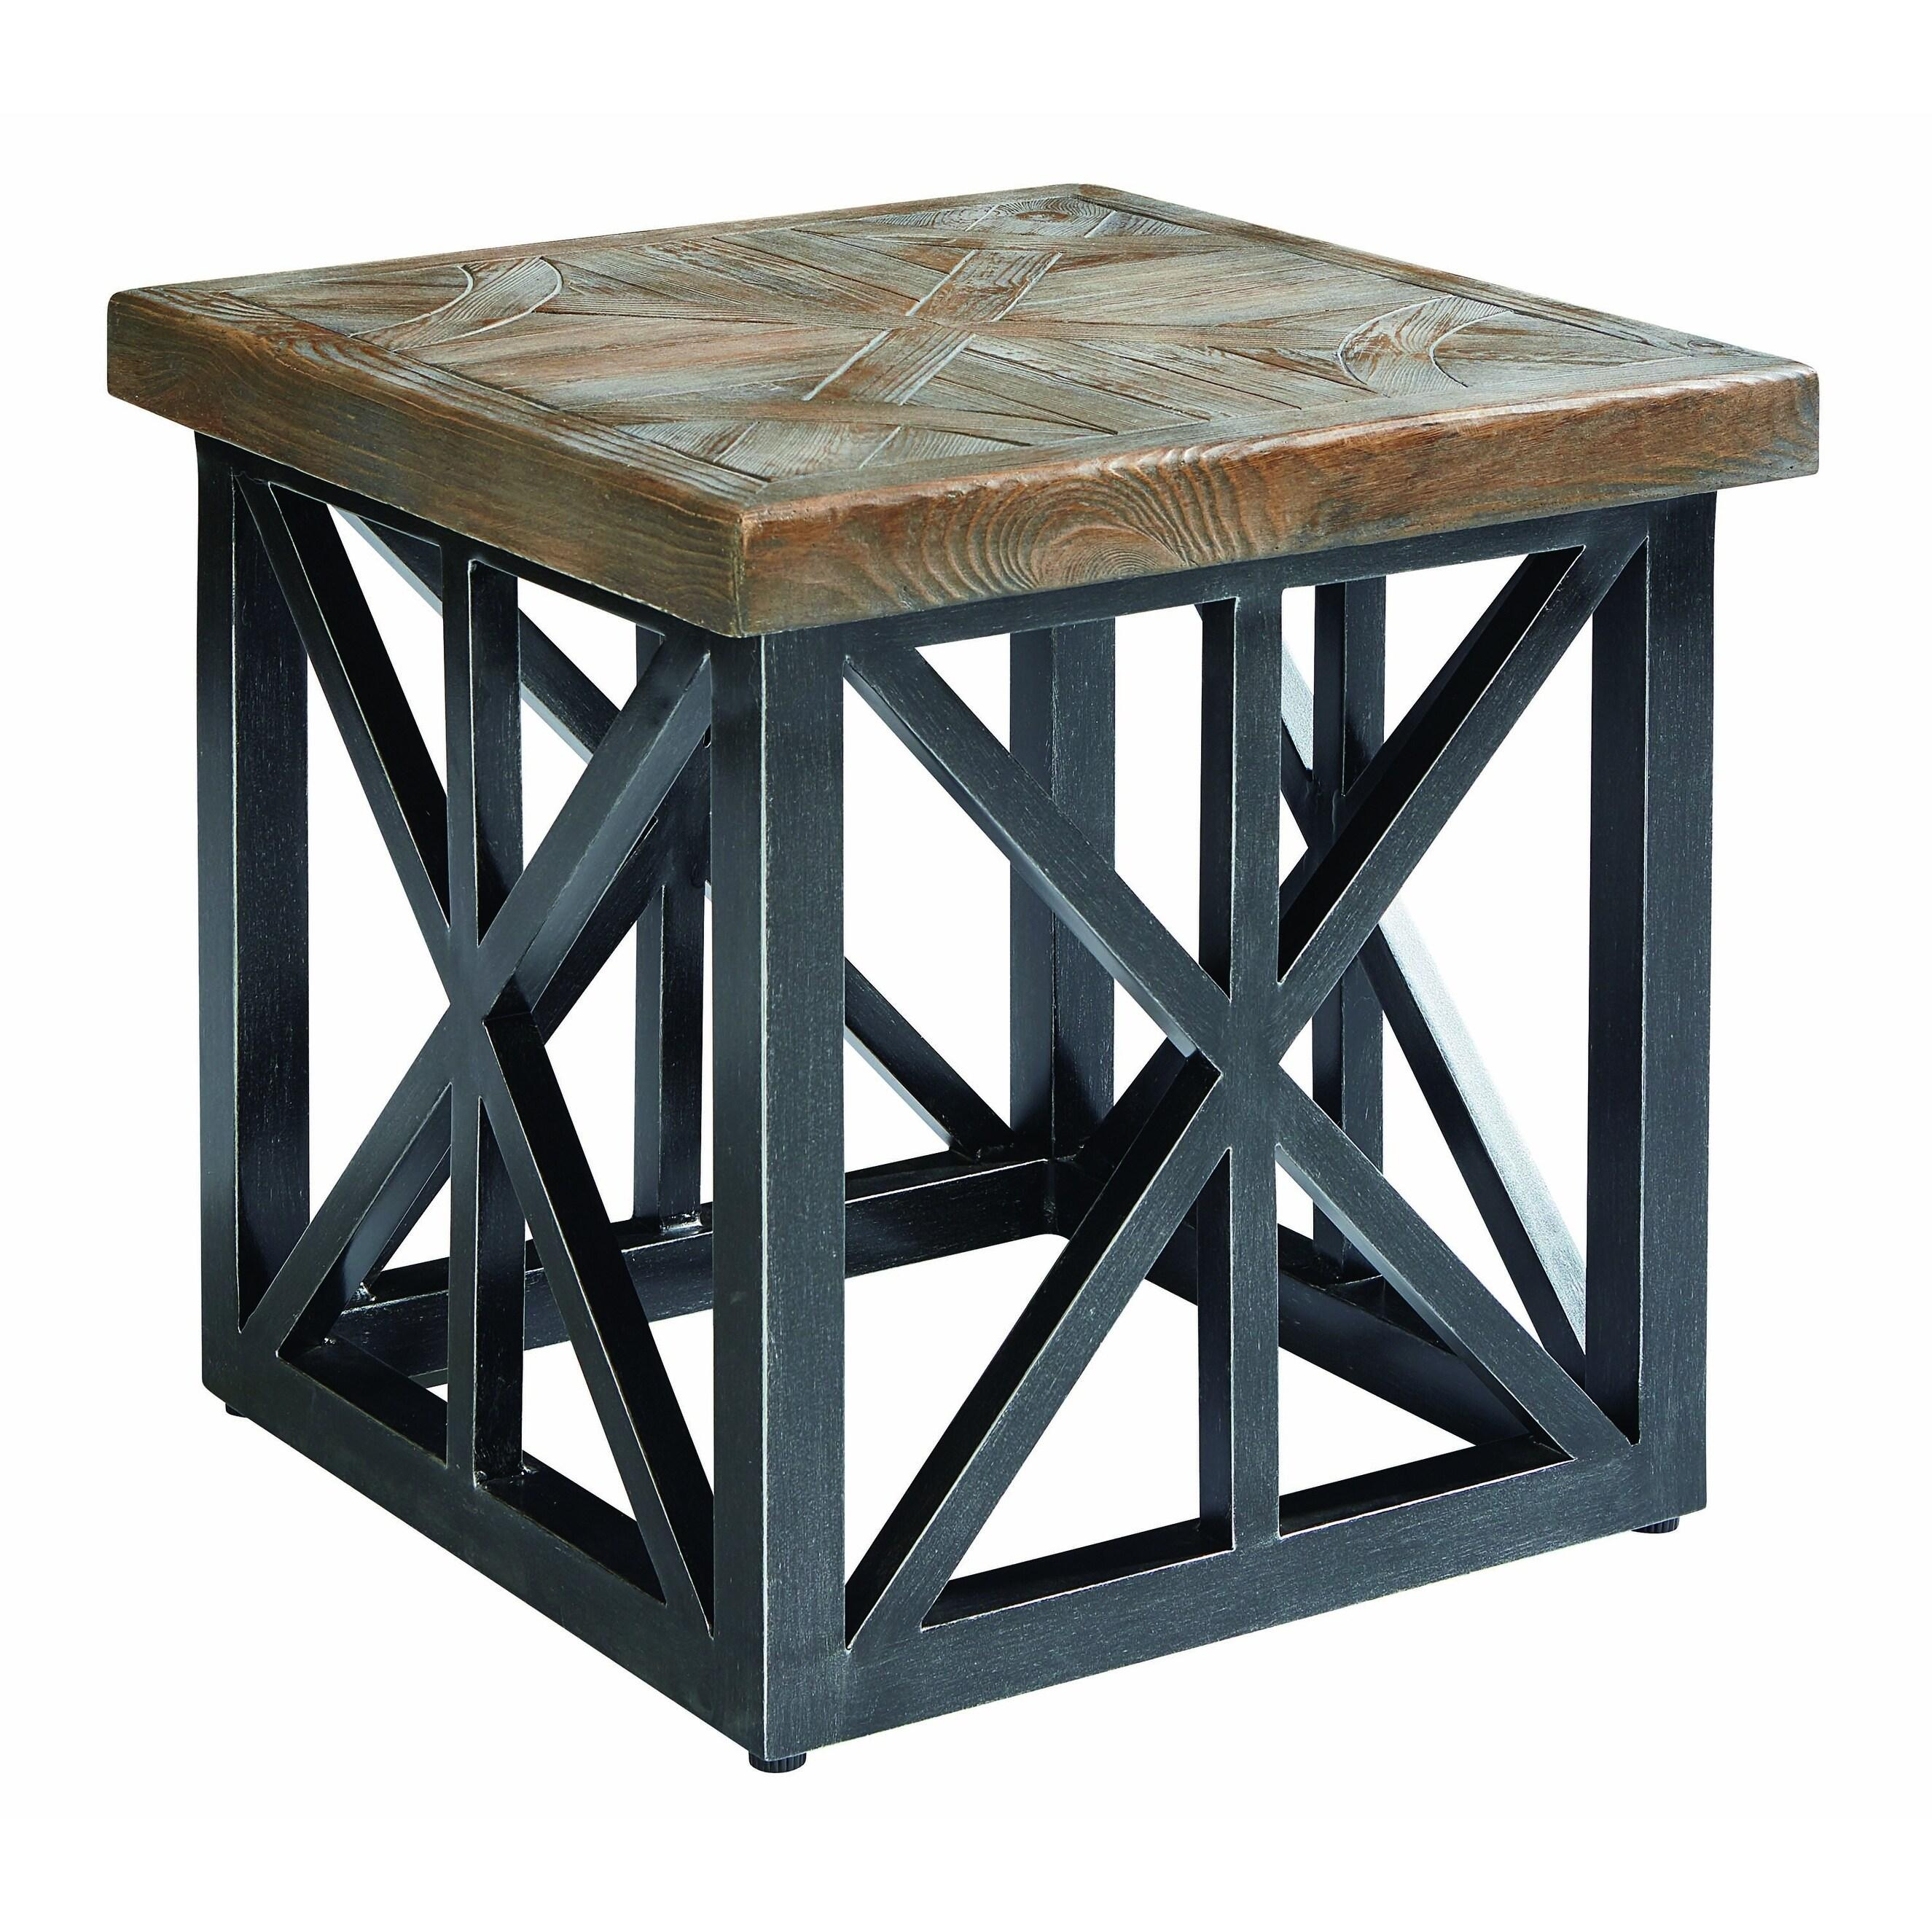 A.R.T. Furniture Arch Salvage Outdoor - Oliver 22